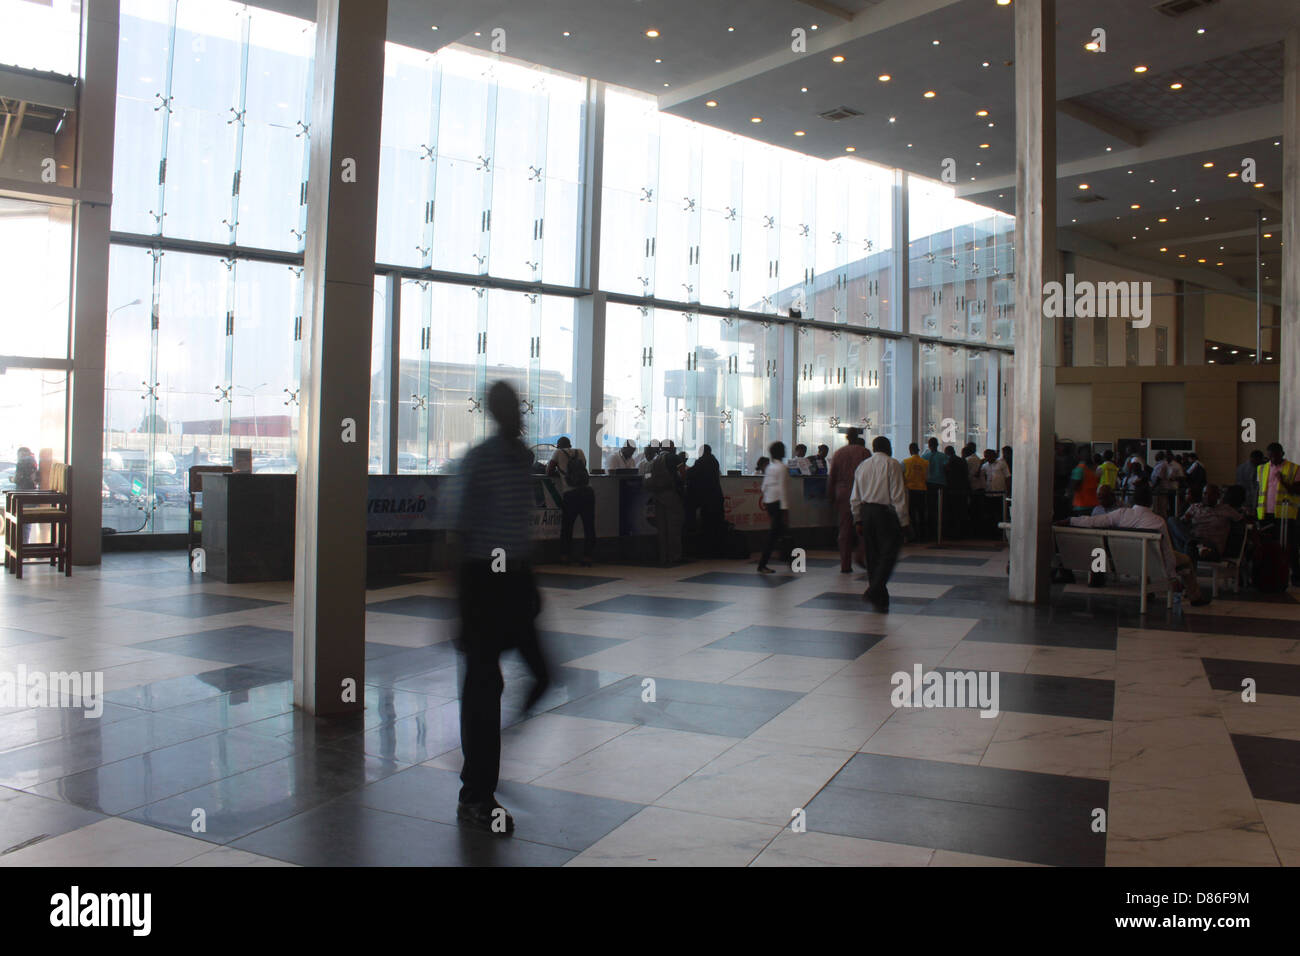 Departure hall of the Murtala Muhammed domestic terminal, Ikeja, Lagos. - Stock Image